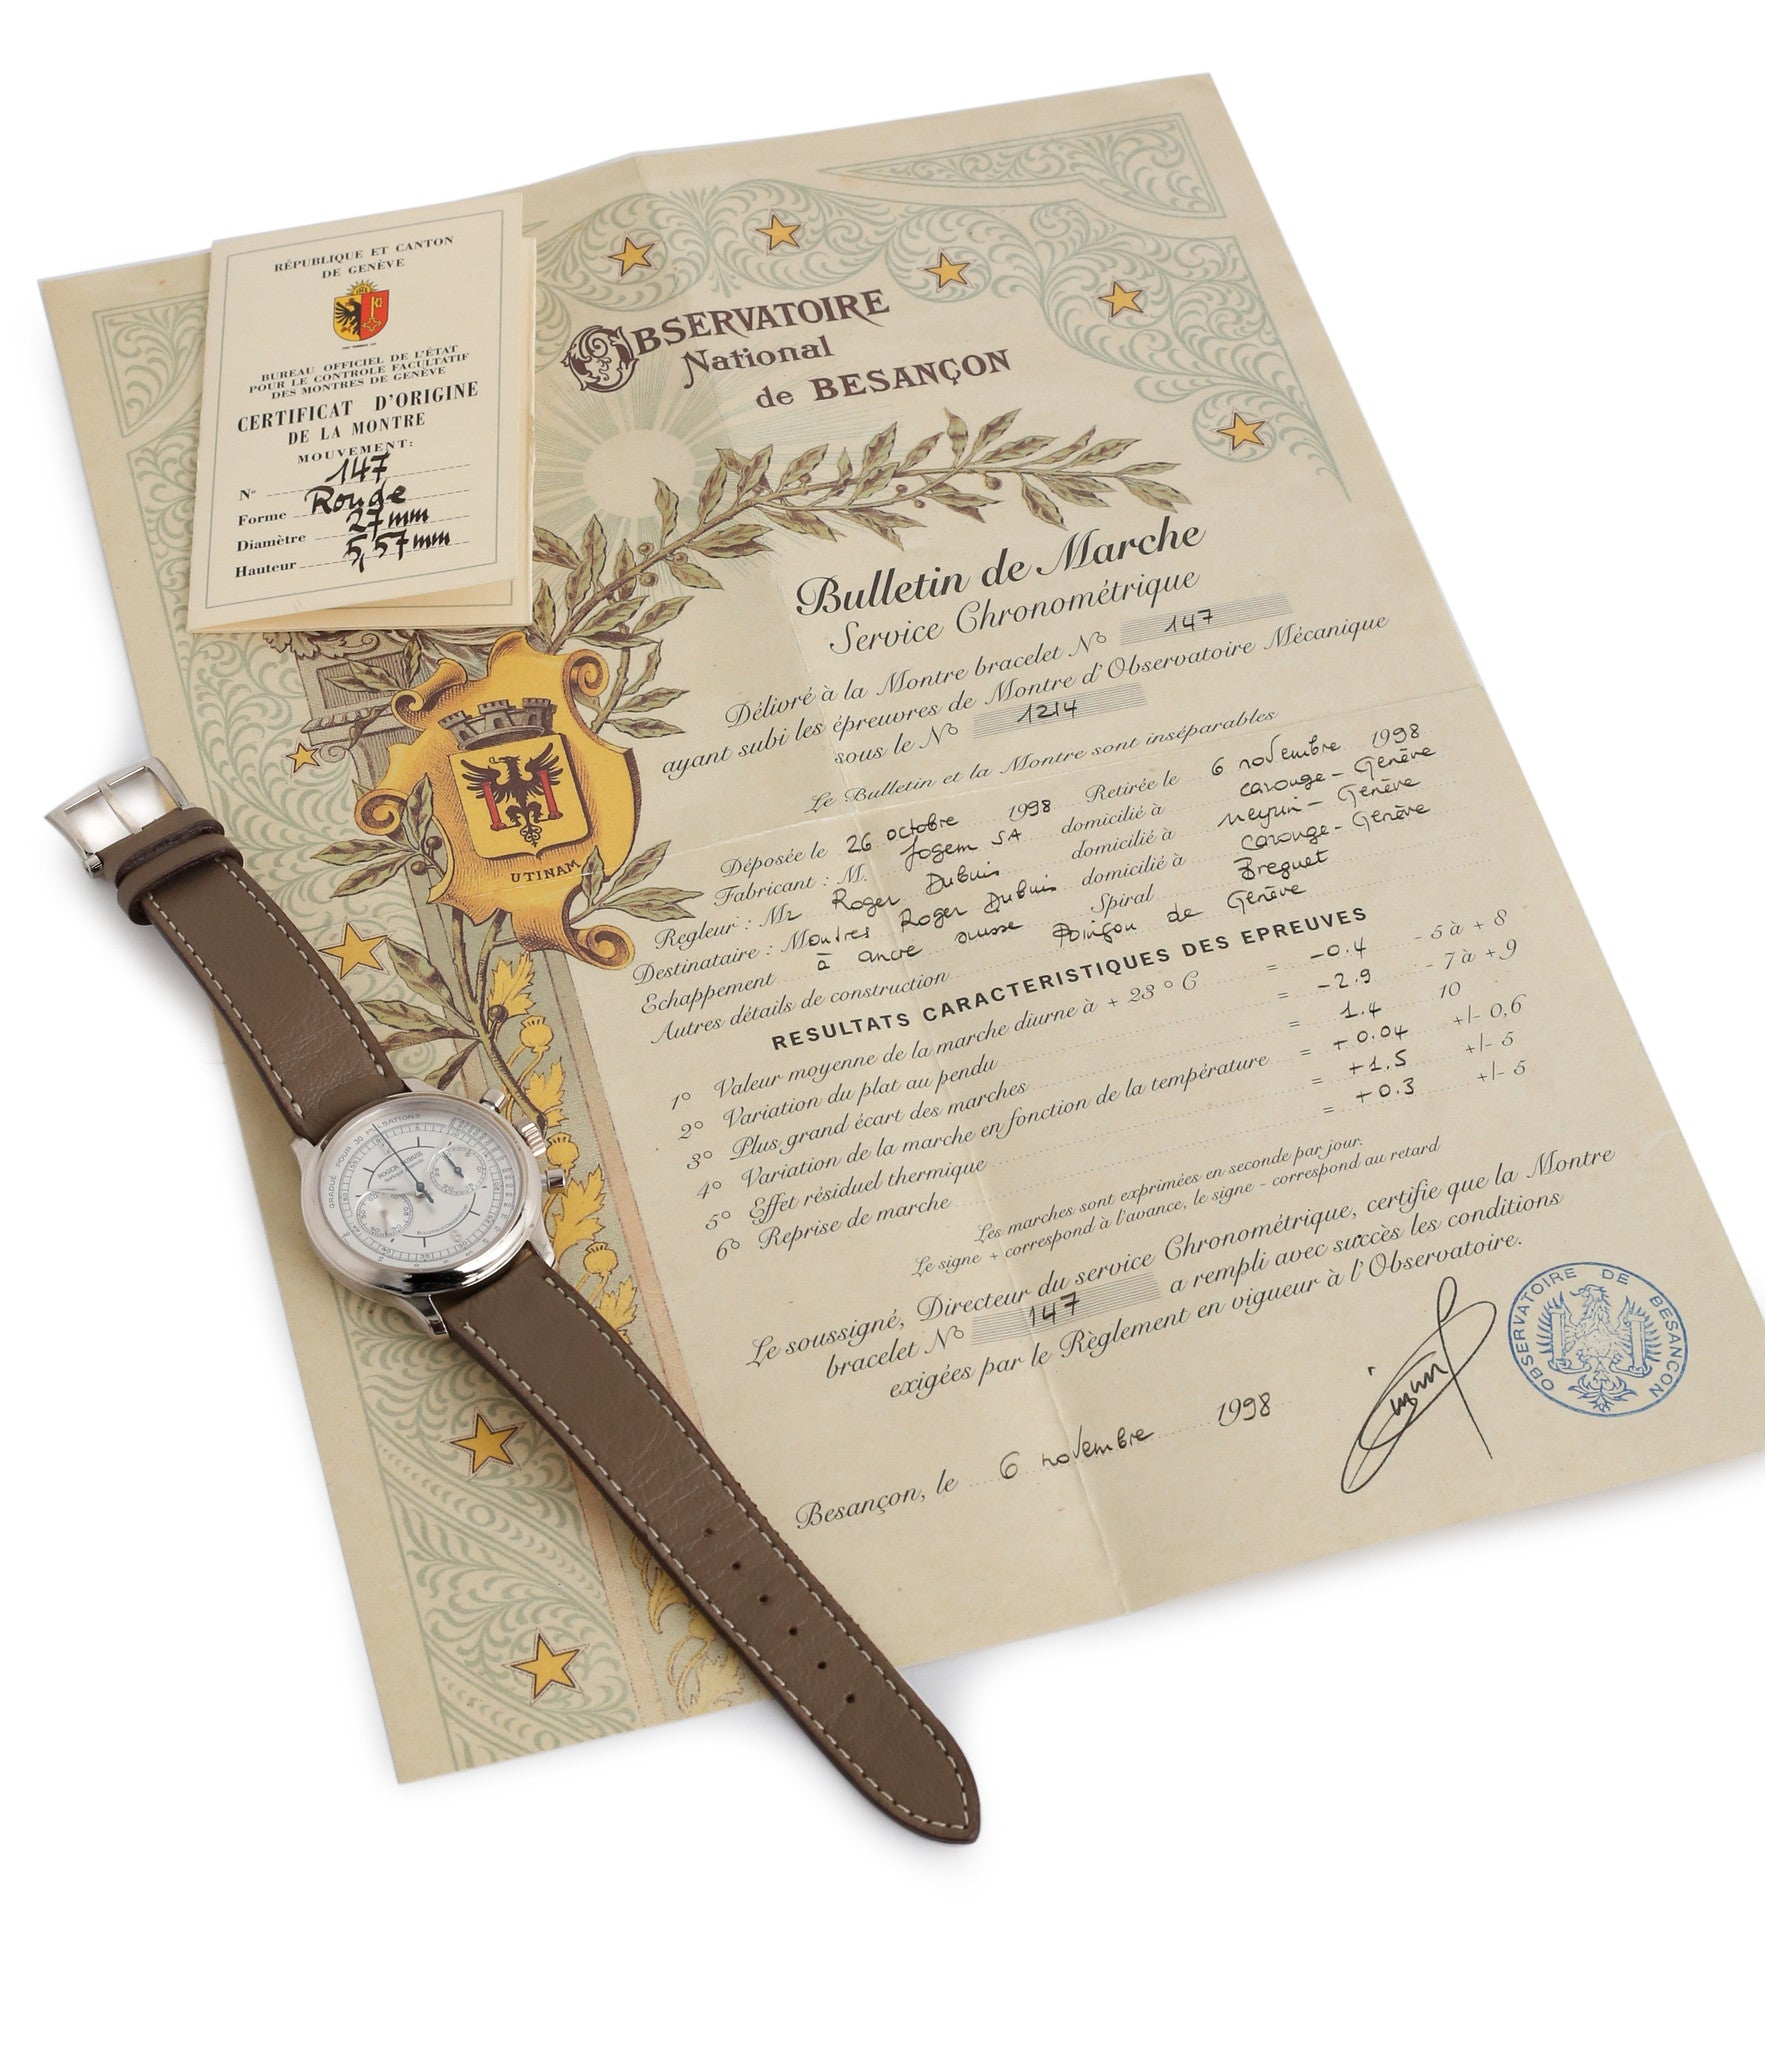 Besancon Certificate with Roger Dubuis Hommage Chronograph early rare watch H37 560 online at a Collcted Man